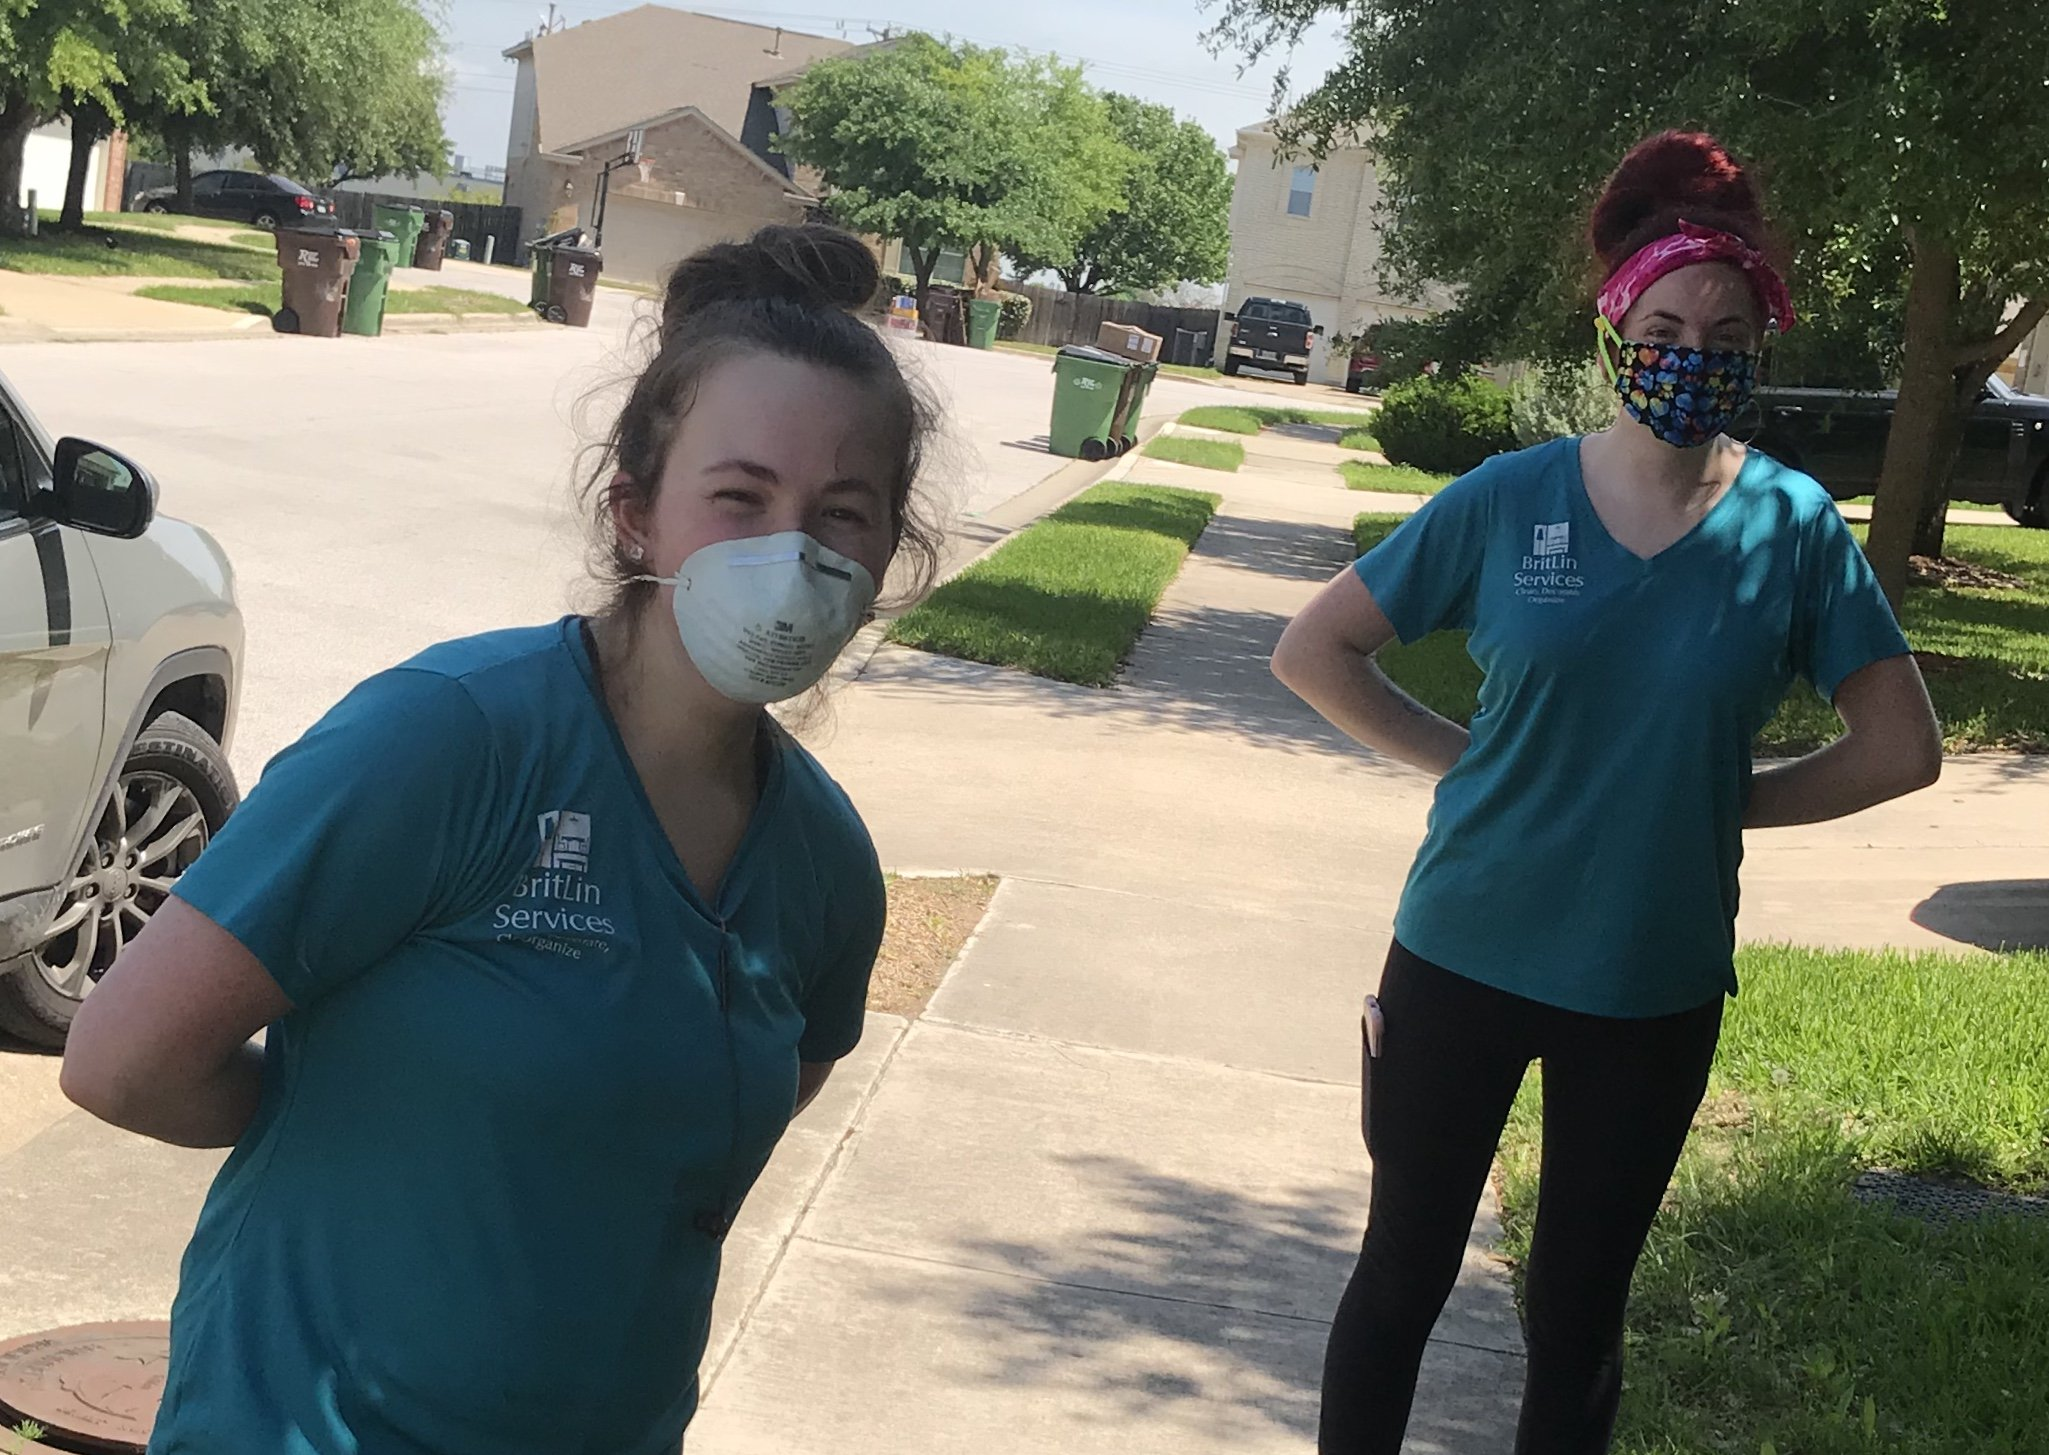 britlin cleaning, maids near me, austin tx maid, austin tx cleaning service, get my house cleaned, workers in masks, cleaners in masks, n95 mask, cloth mask